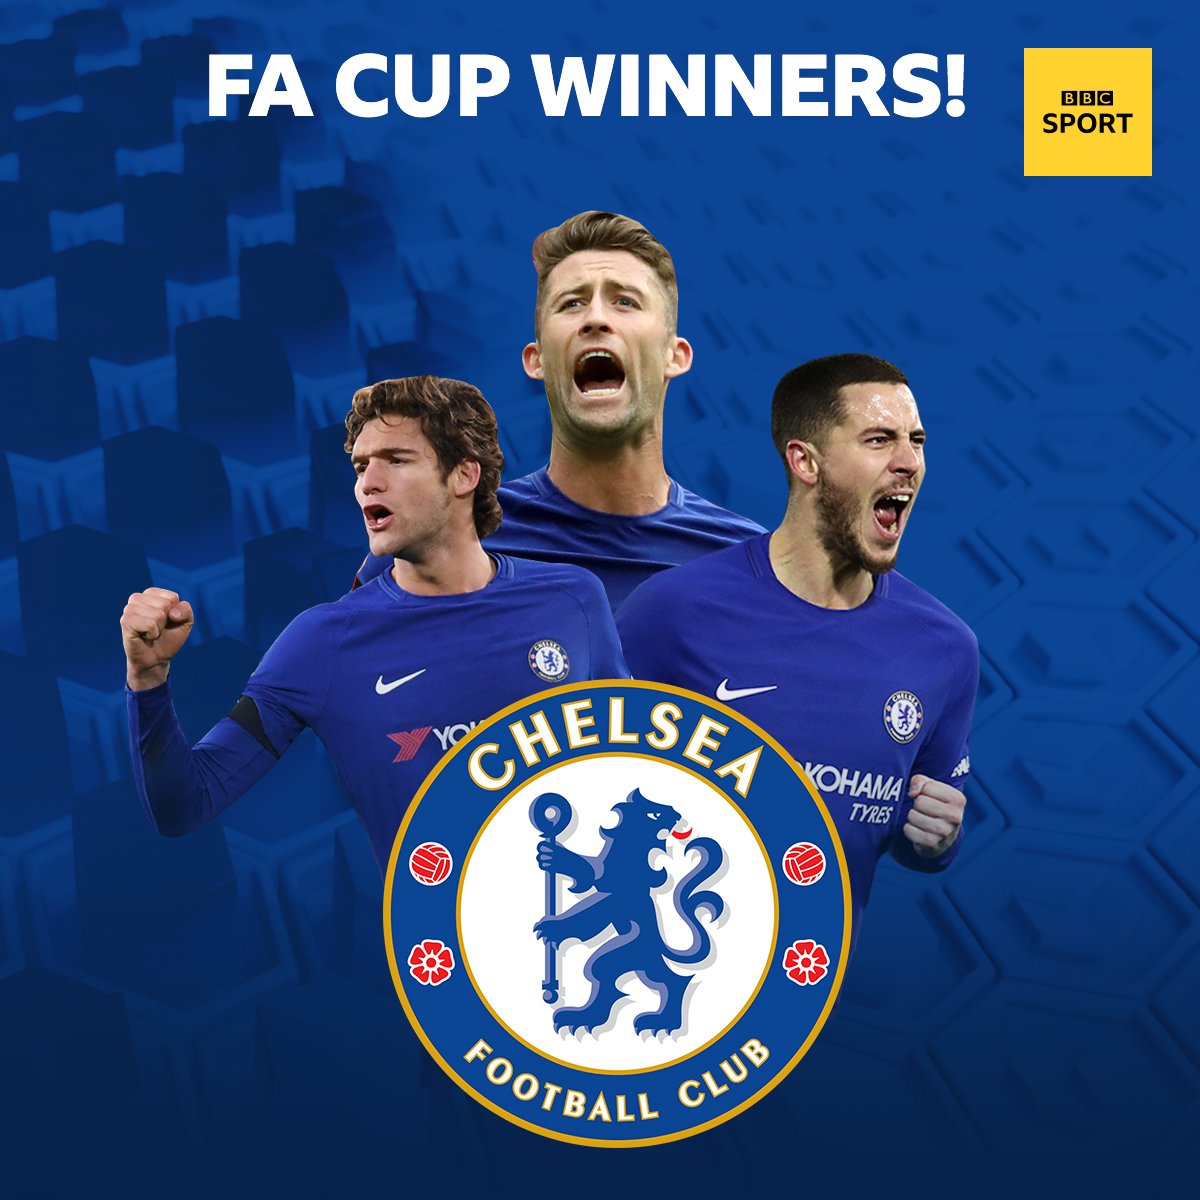 CHELSEA HAVE WON THE FA CUP! 🏆  Theyve beaten Man Utd 1-0.  Party time for the Blues 🎉  👉 bbc.in/2wSoWTG #FACupFinal #bbcfacup #CFC